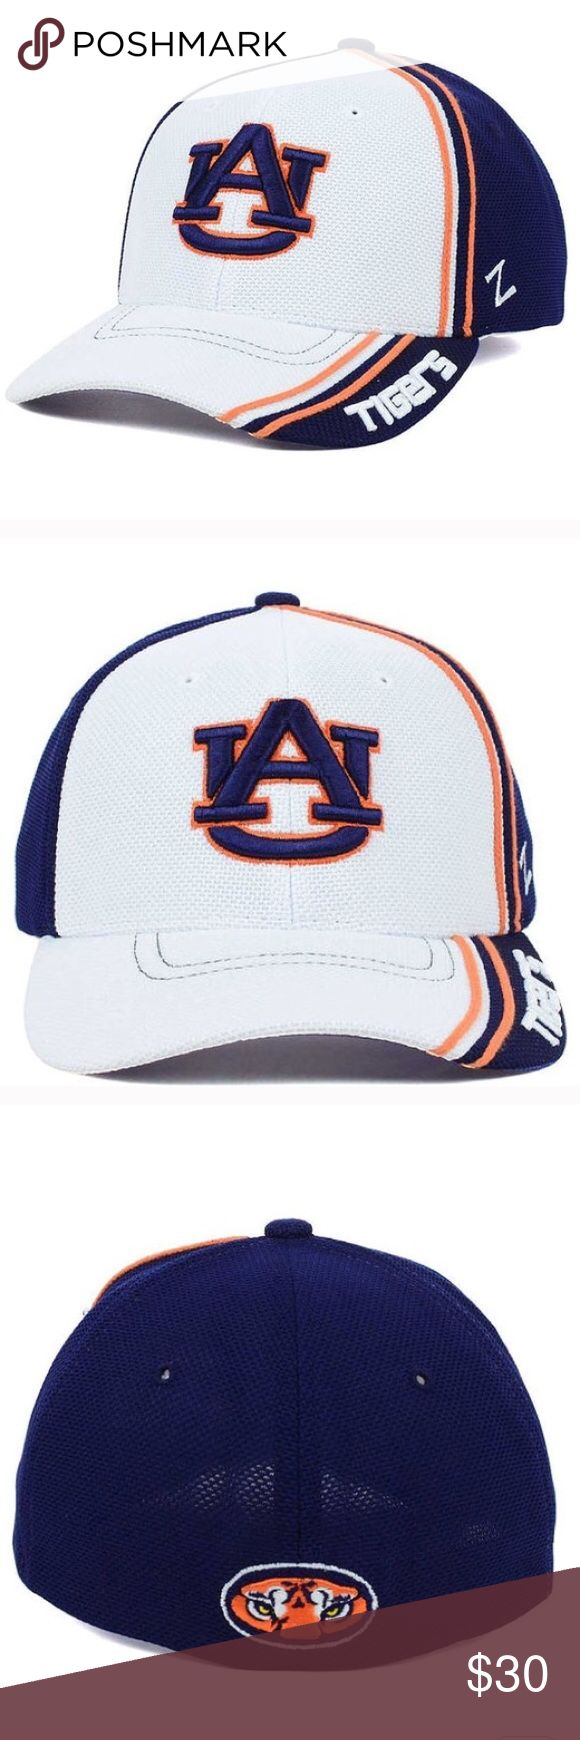 Auburn tigers hat Show your support for the NCAA and the Auburn Tigers this year with the Auburn Tigers NCAA Slash AG Cap. Rain or shine, this White hat will keep you in style all year long. Stay comfortable and cool with this structured hat, featuring a normal bill and medium crown. Imported and made of woven polyester, this product requires easy spot clean product Color: White Made of 100% Polyester, Woven Stretch Fitted Structured Fit Mid Crown Normal Bill Raised Embroidery Letter on…